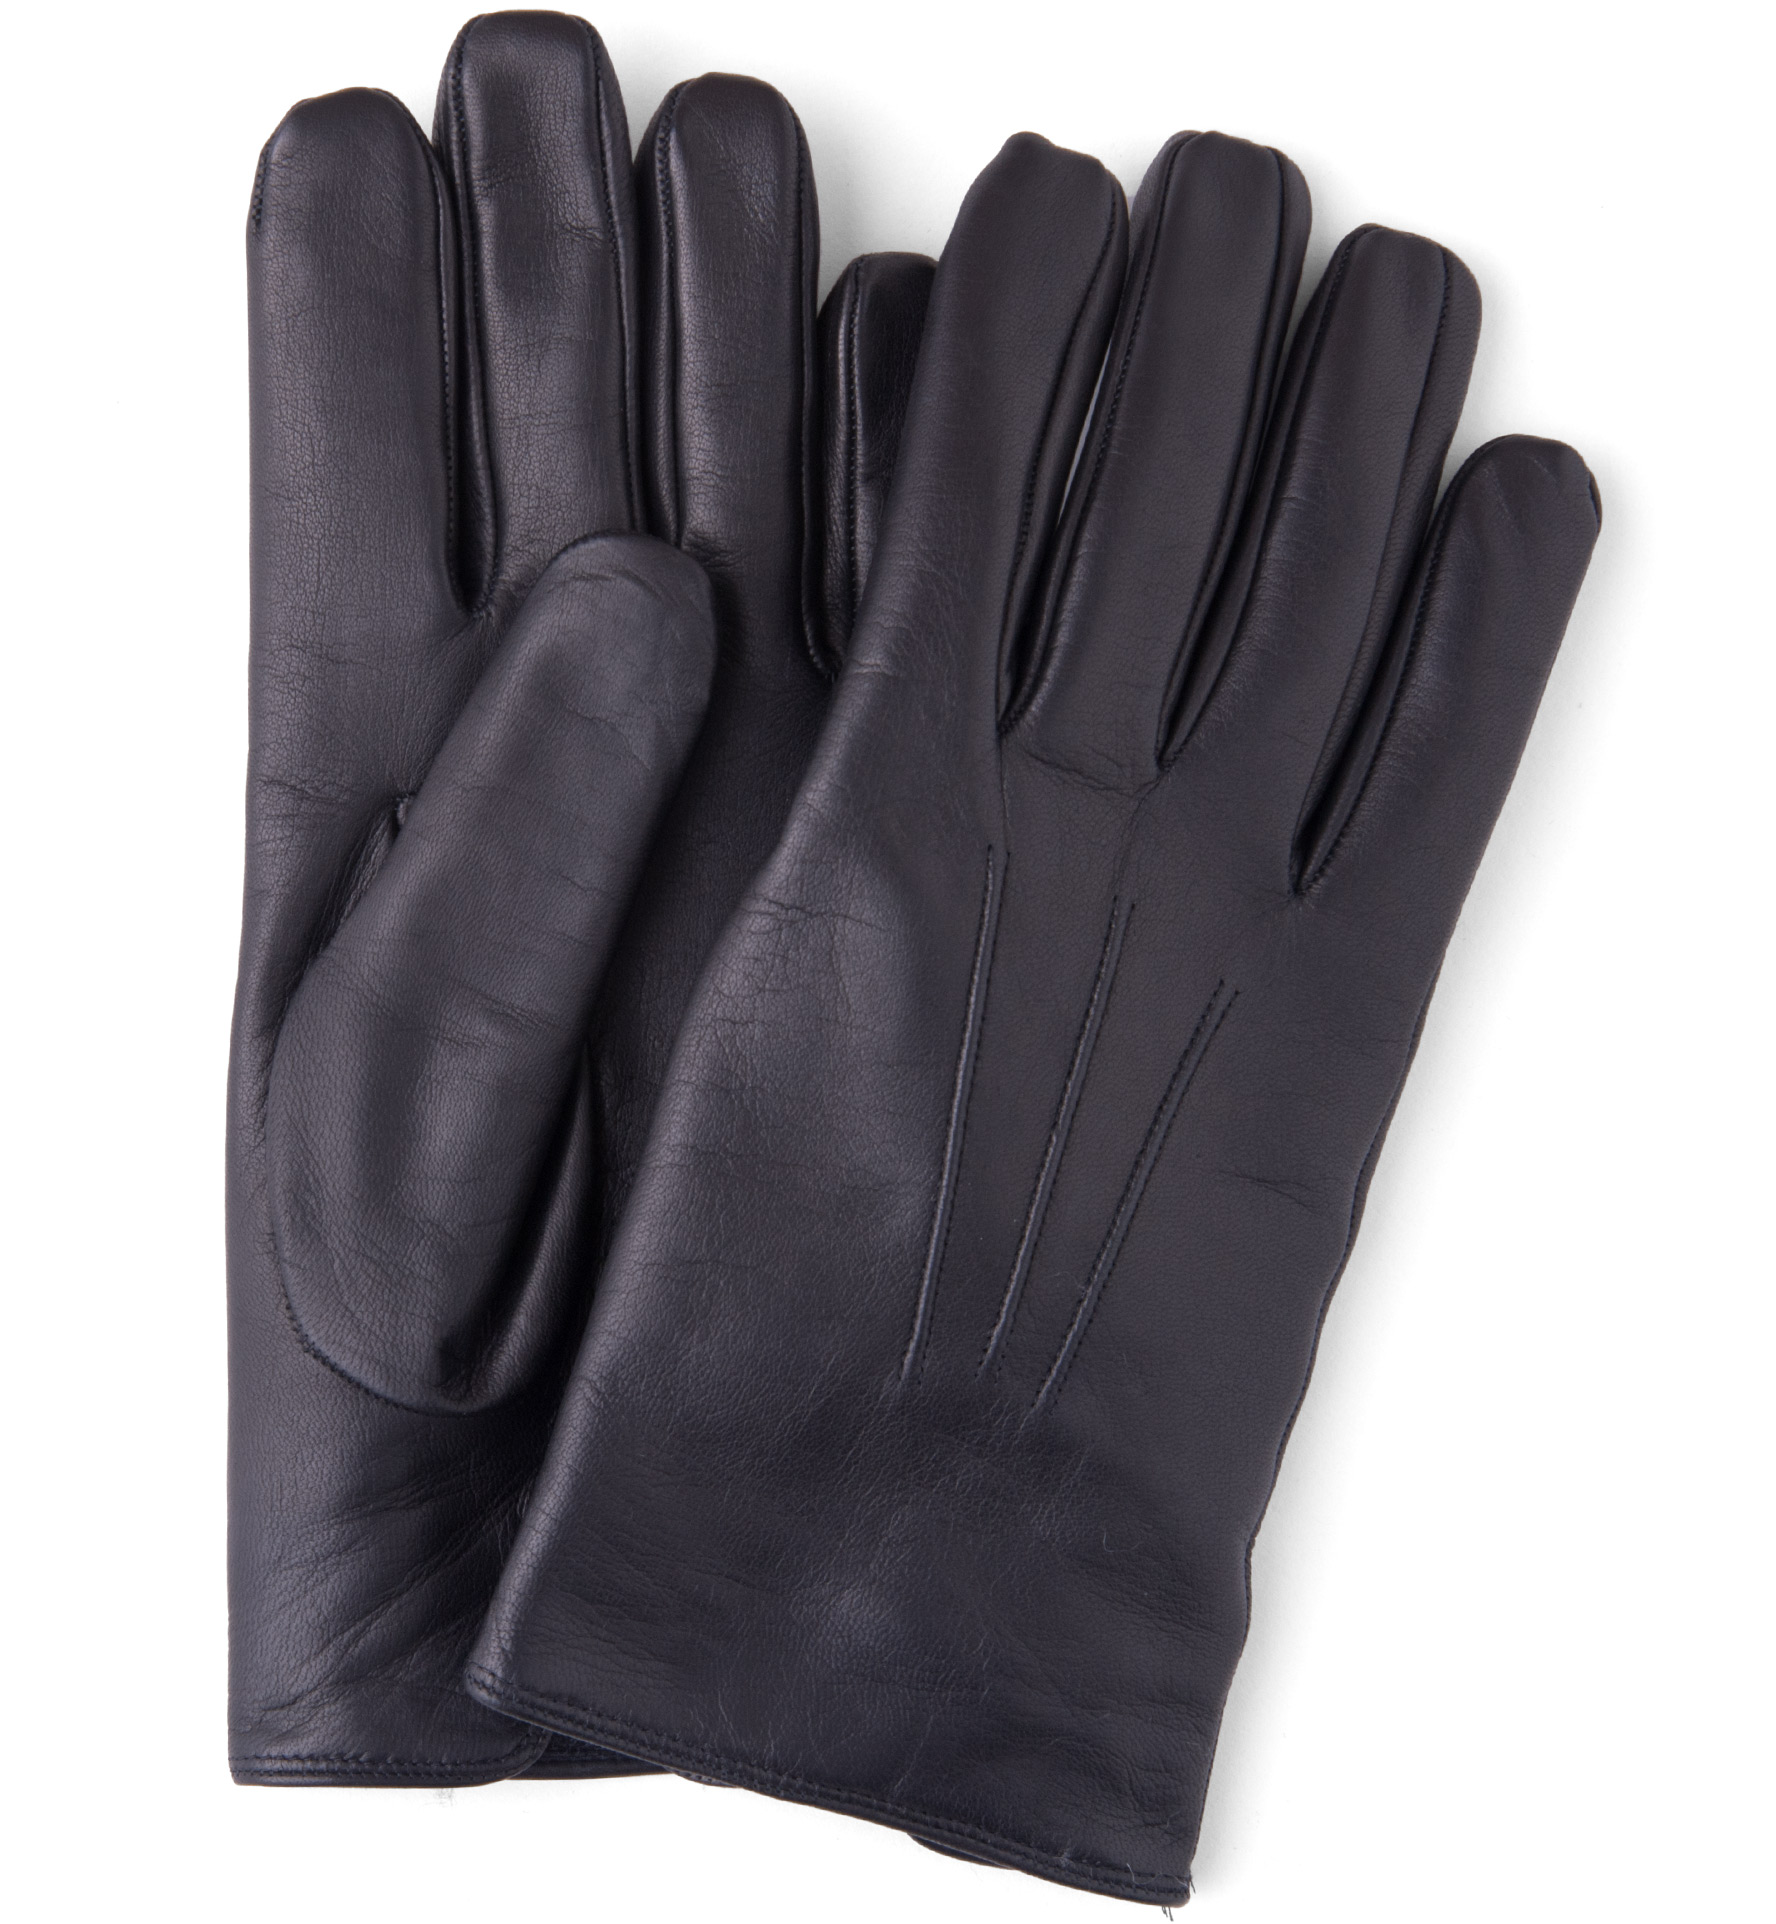 Zoom Image of Black Leather Cashmere Lined Gloves